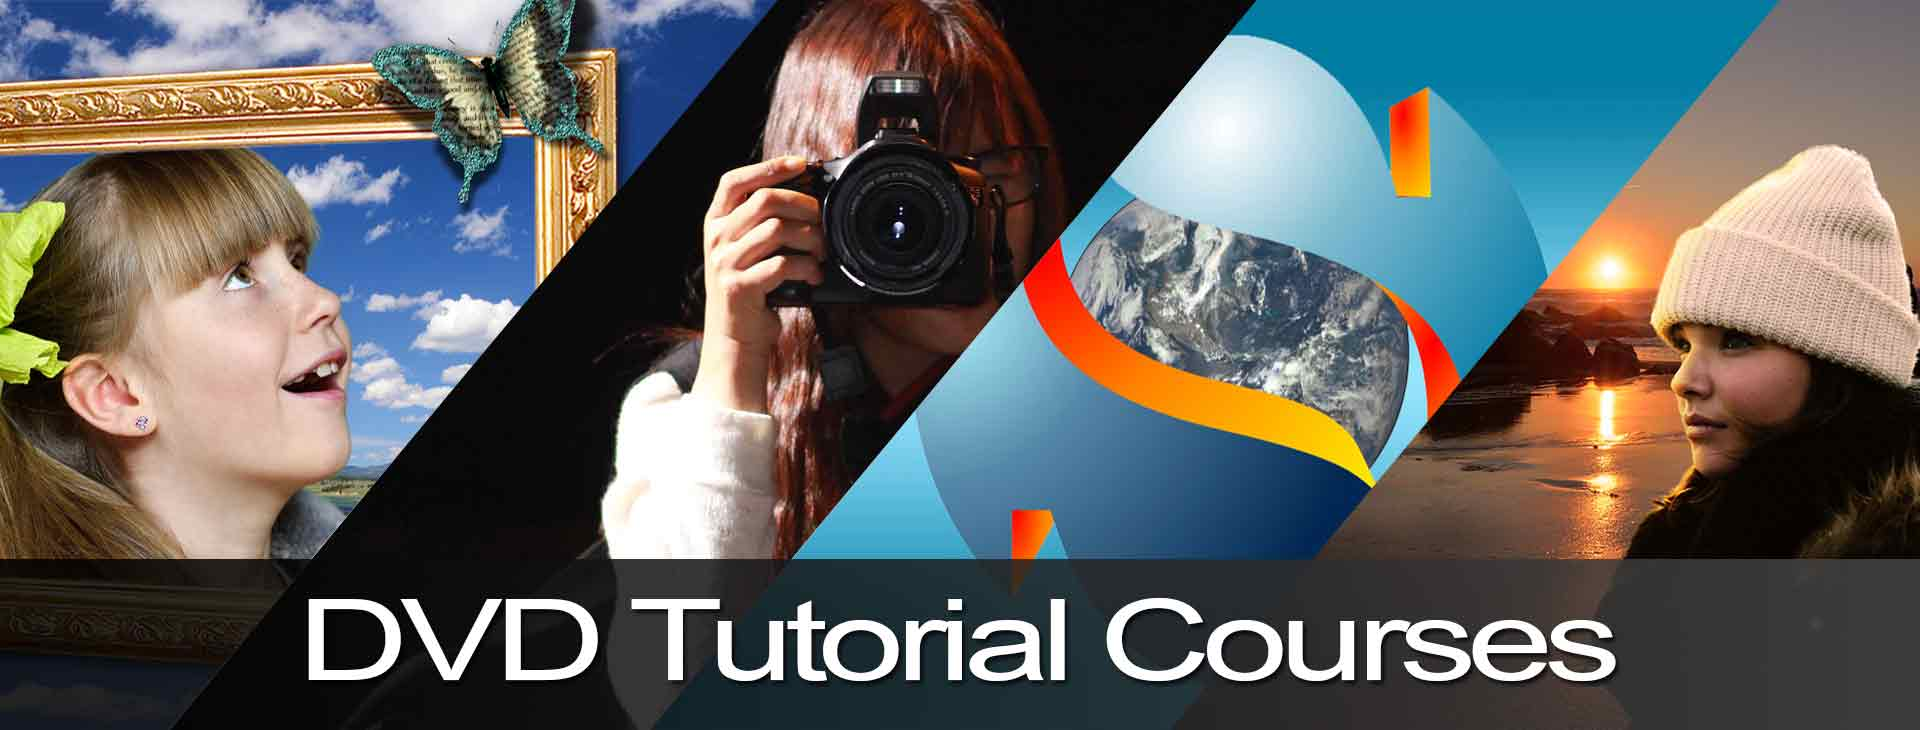 DVD Tutorial Courses from How To Gurus